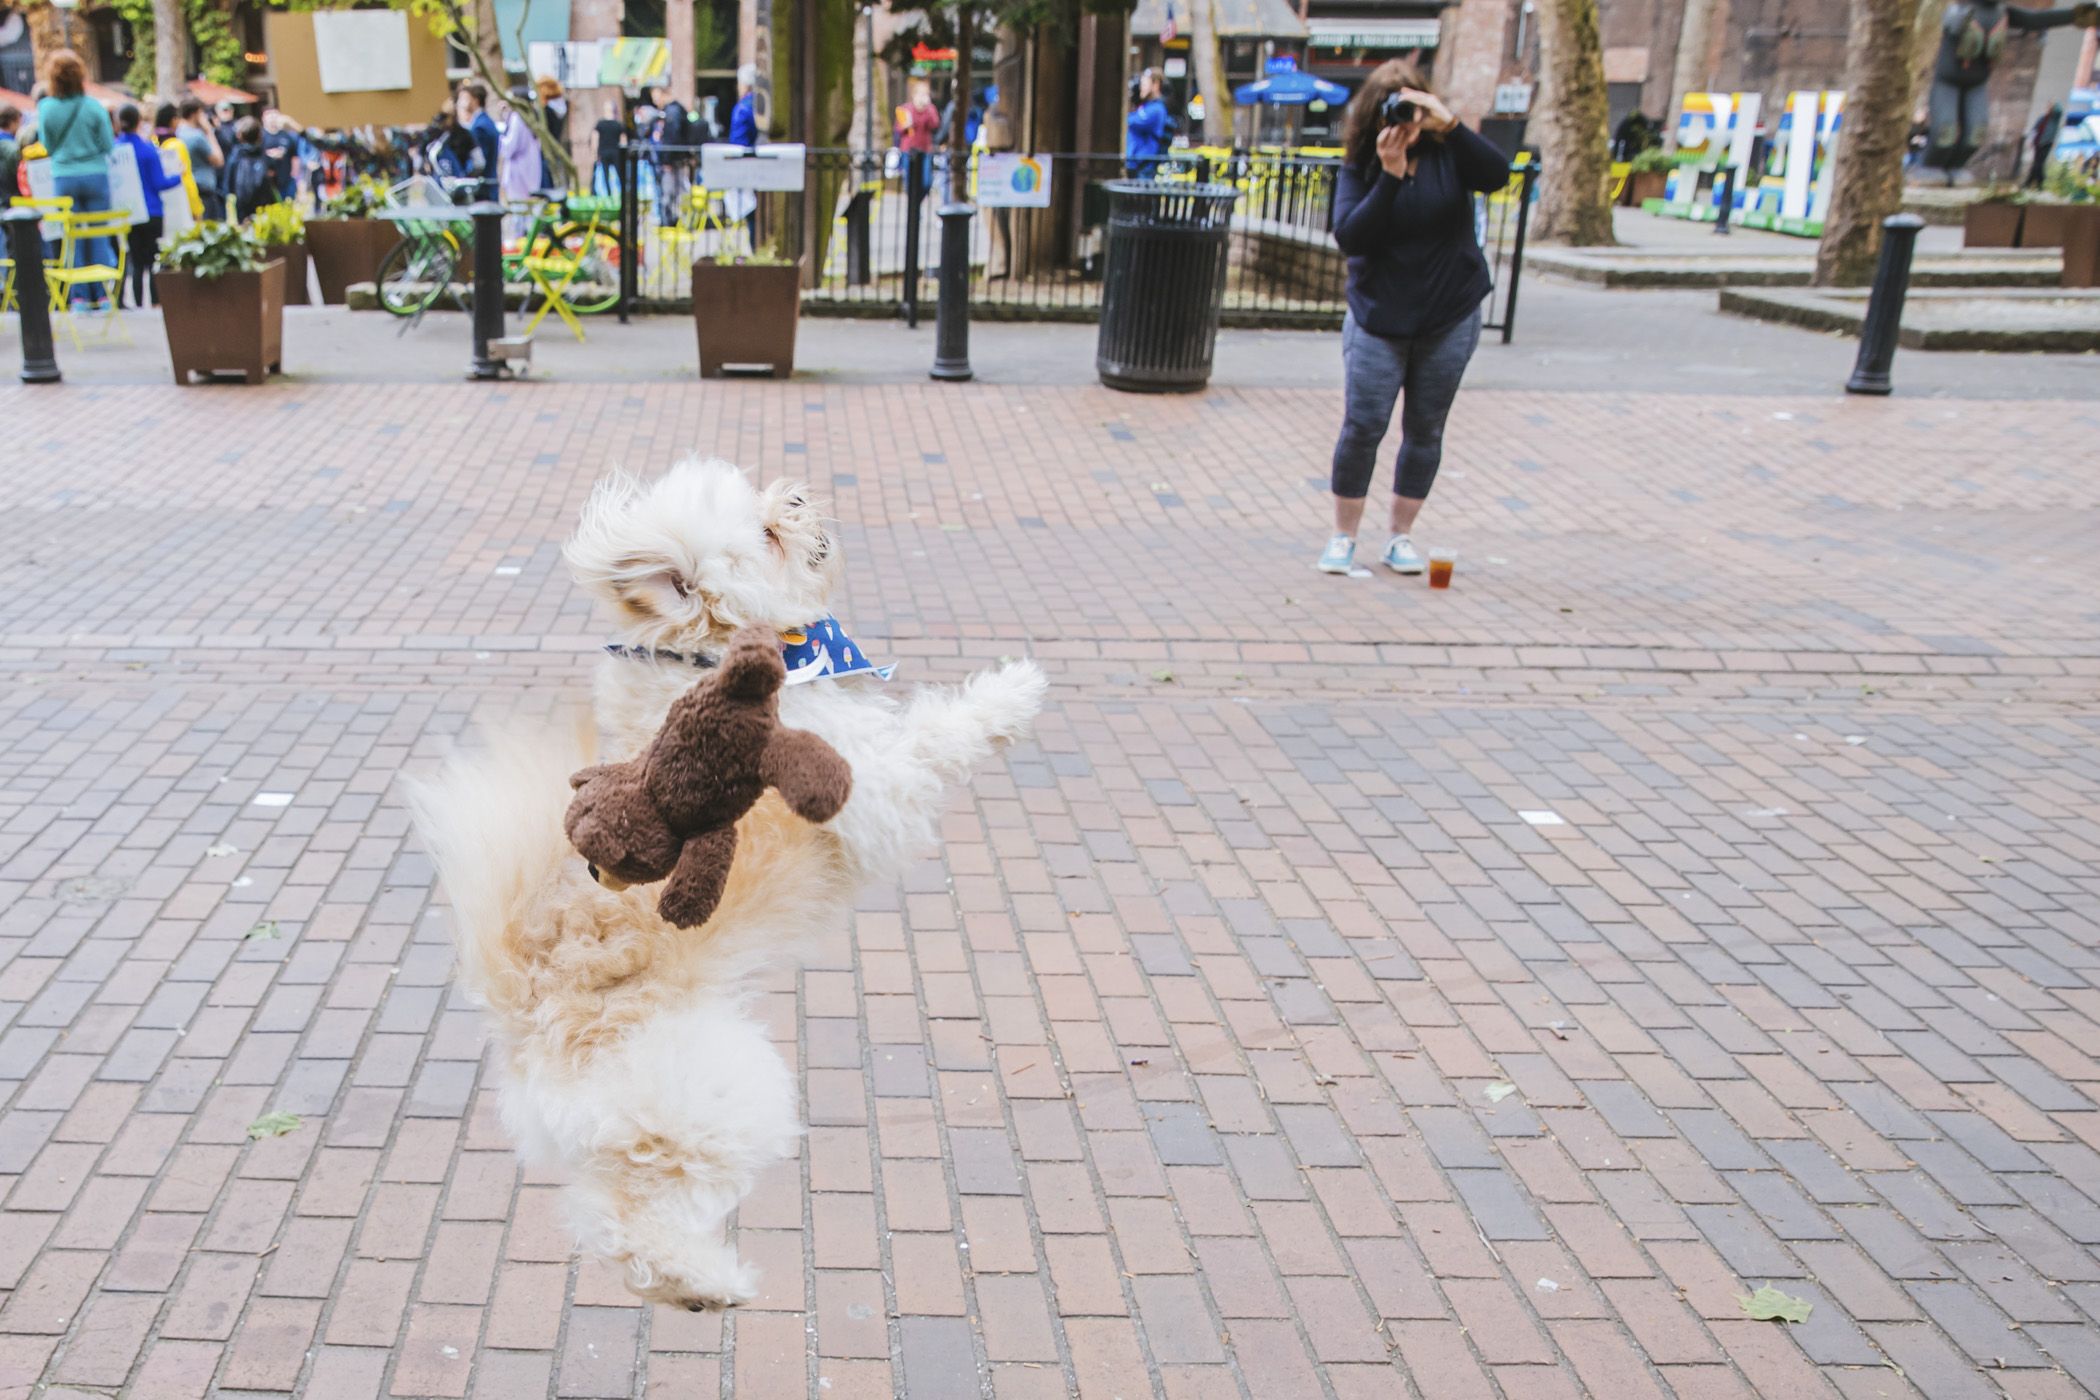 This is Max. Max is an Eskipoo, half American Eskimo and half mini Poodle and is 2.5 years young! Max is always happy and loves to play. He always has to carry a toy with him and he dreams one day of catching a squirrel. He likes cheese, chasing squirrels, going to the dog park, sticks, riding in his human's bike back pack, bacon and cuddles. He dislikes waking up in the morning and being away from his dad. You can follow Max's journey through life on instagram, @max_the_eskipoo.{ }The Seattle RUFFined Spotlight is a weekly profile of local pets living and loving life in the PNW. If you or someone you know has a pet you'd like featured, email us at hello@seattlerefined.com or tag #SeattleRUFFined and your furbaby could be the next spotlighted! (Image: Sunita Martini / Seattle Refined).